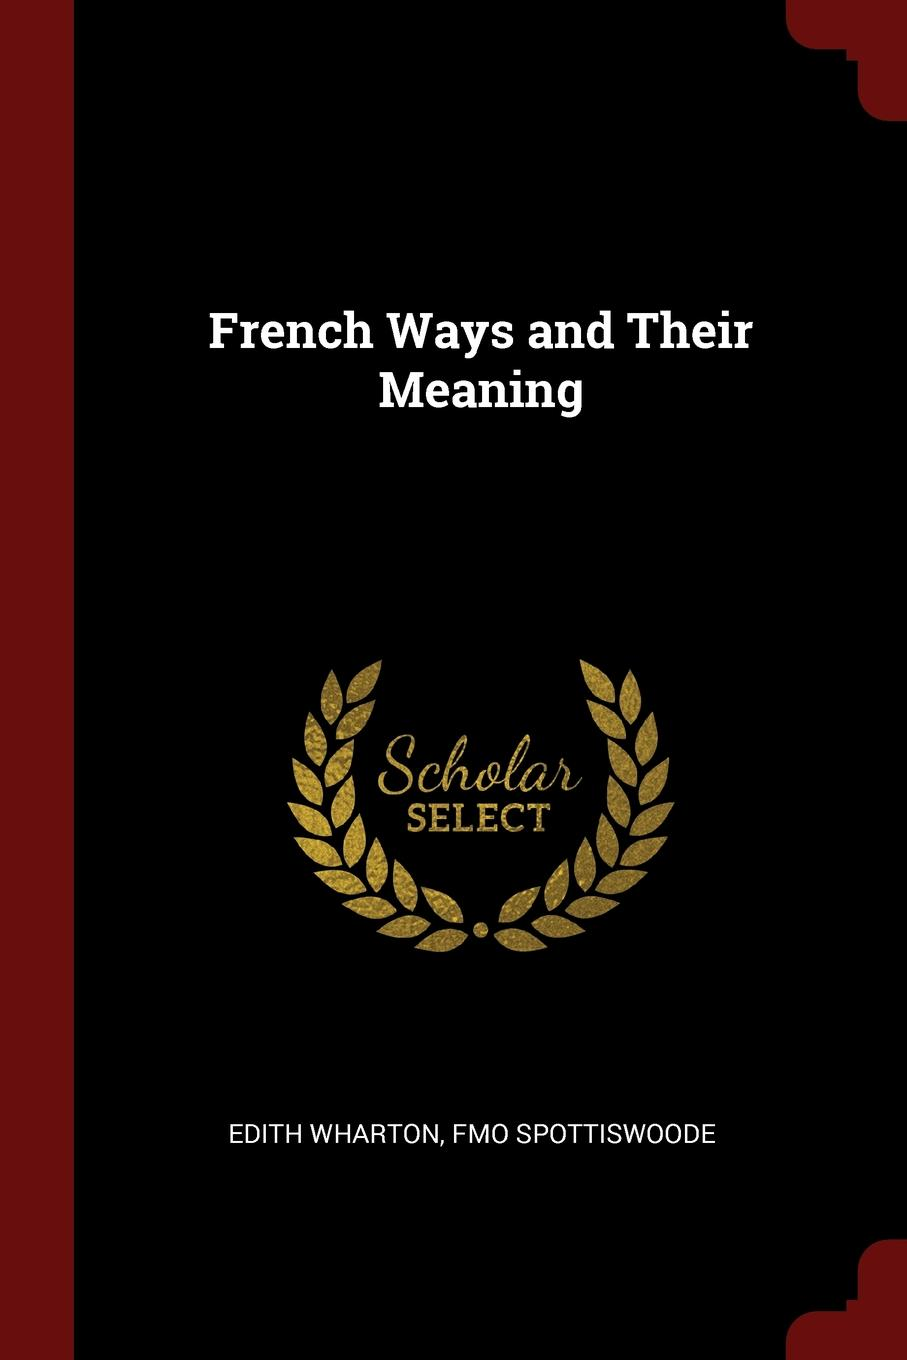 Edith Wharton, fmo Spottiswoode French Ways and Their Meaning